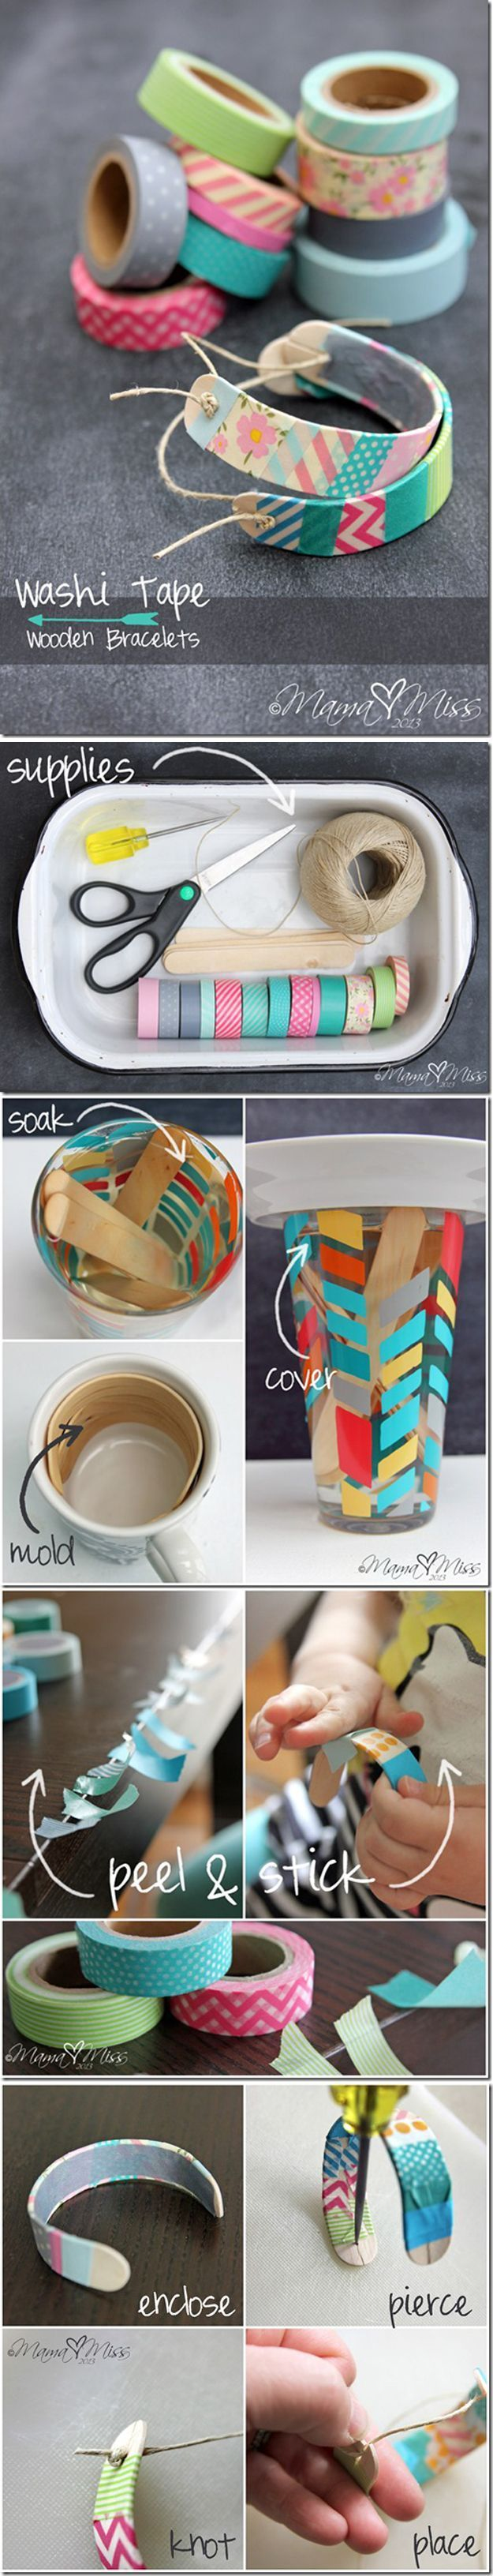 DIY Washi Tape Jewelry | Washi Tape Wooden Bracelets by DIY Ready at diyready.com/...  Lauren B Montana